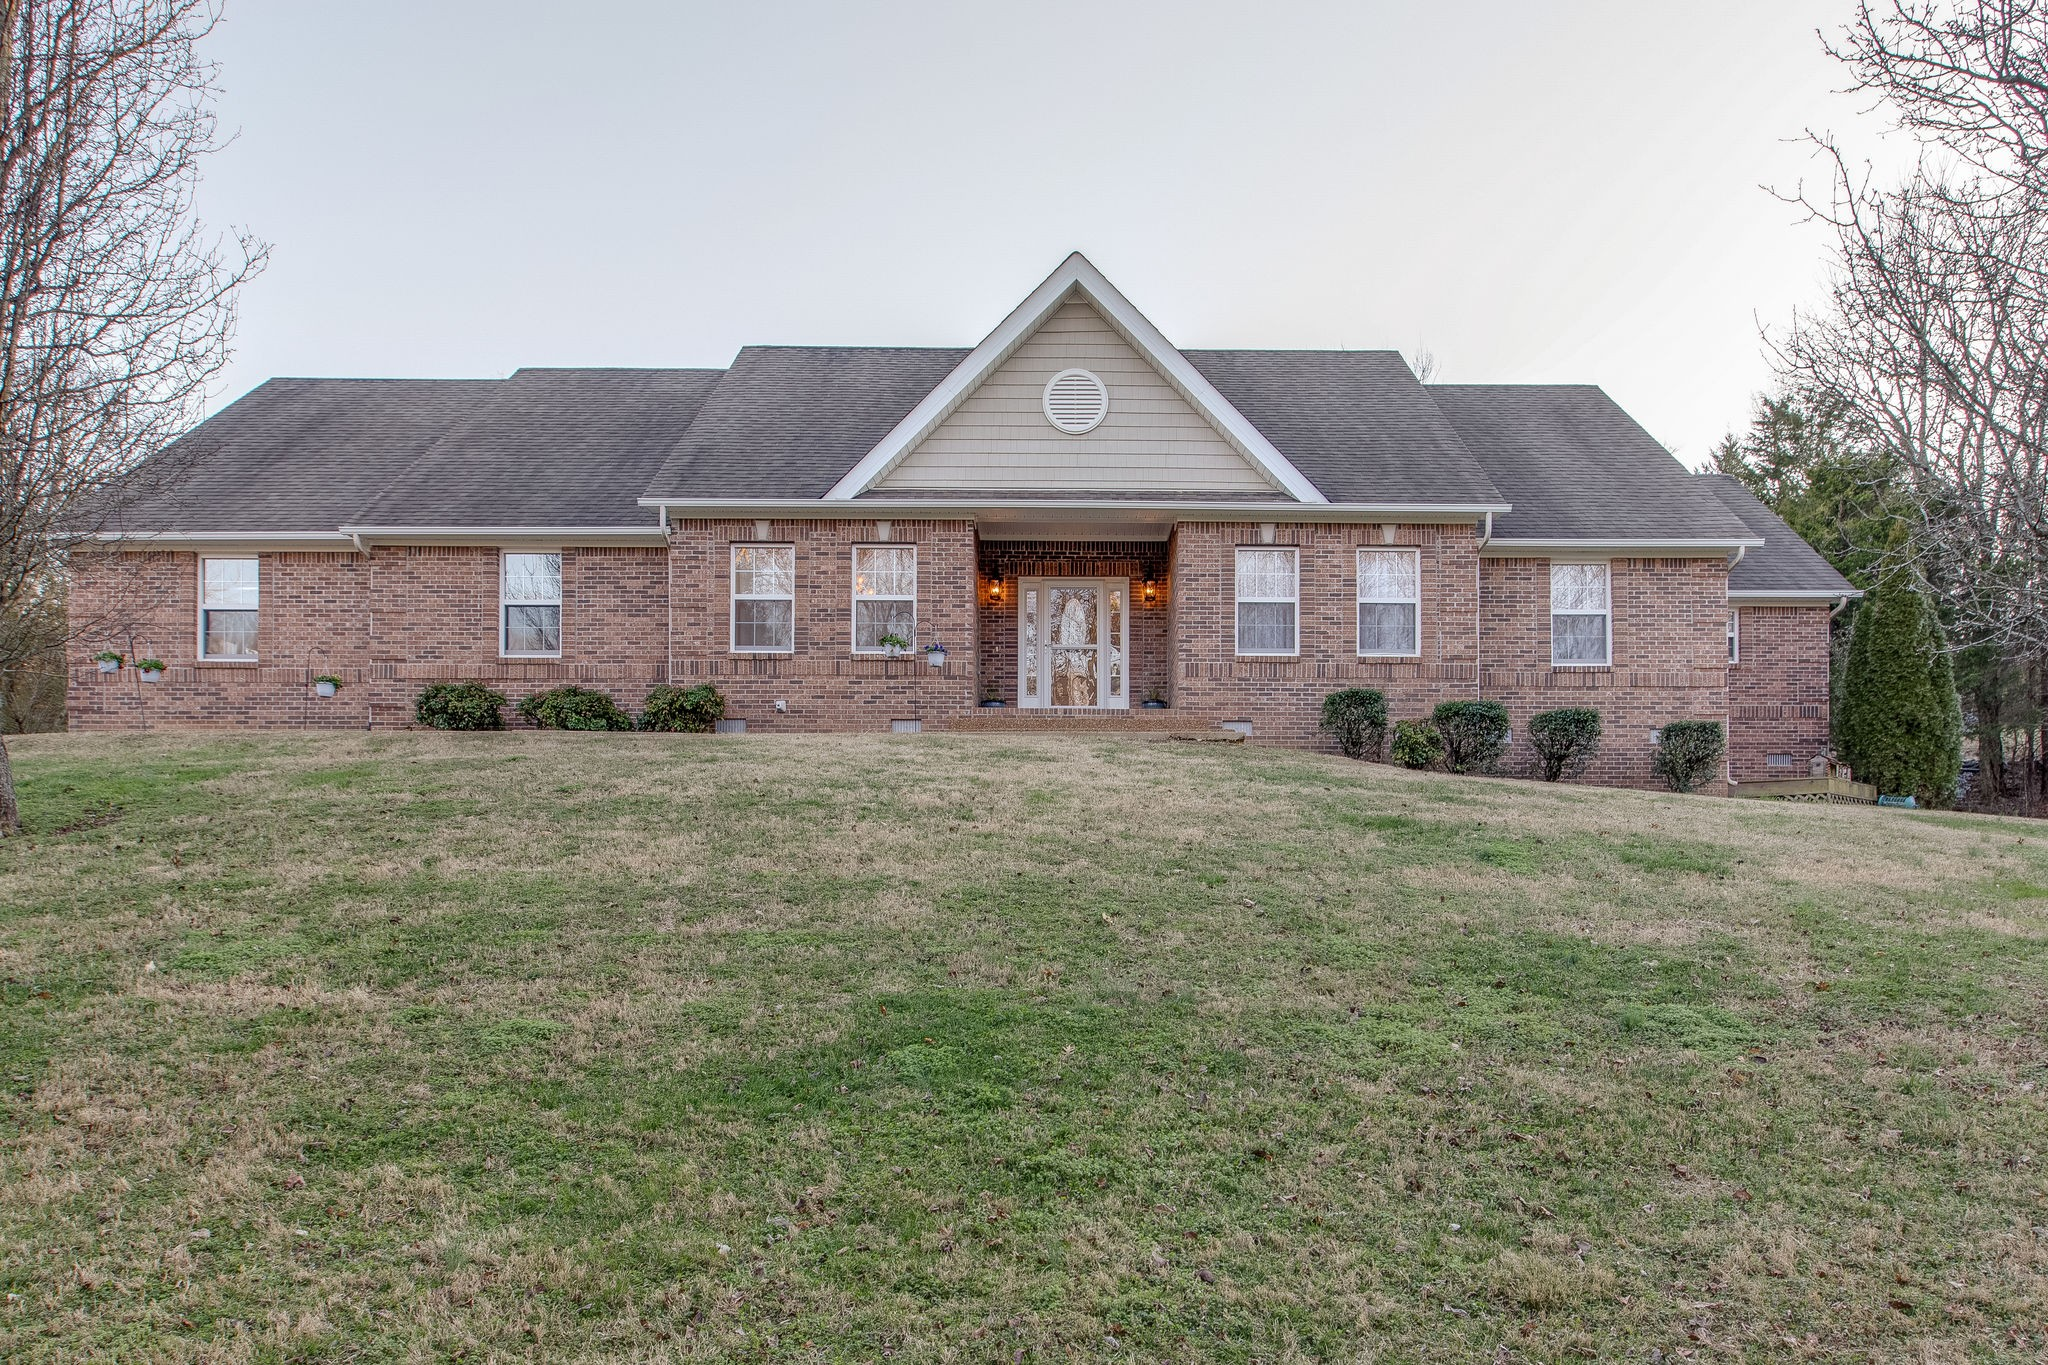 1755 Vp Lunn Dr, Spring Hill, TN 37174 - Spring Hill, TN real estate listing